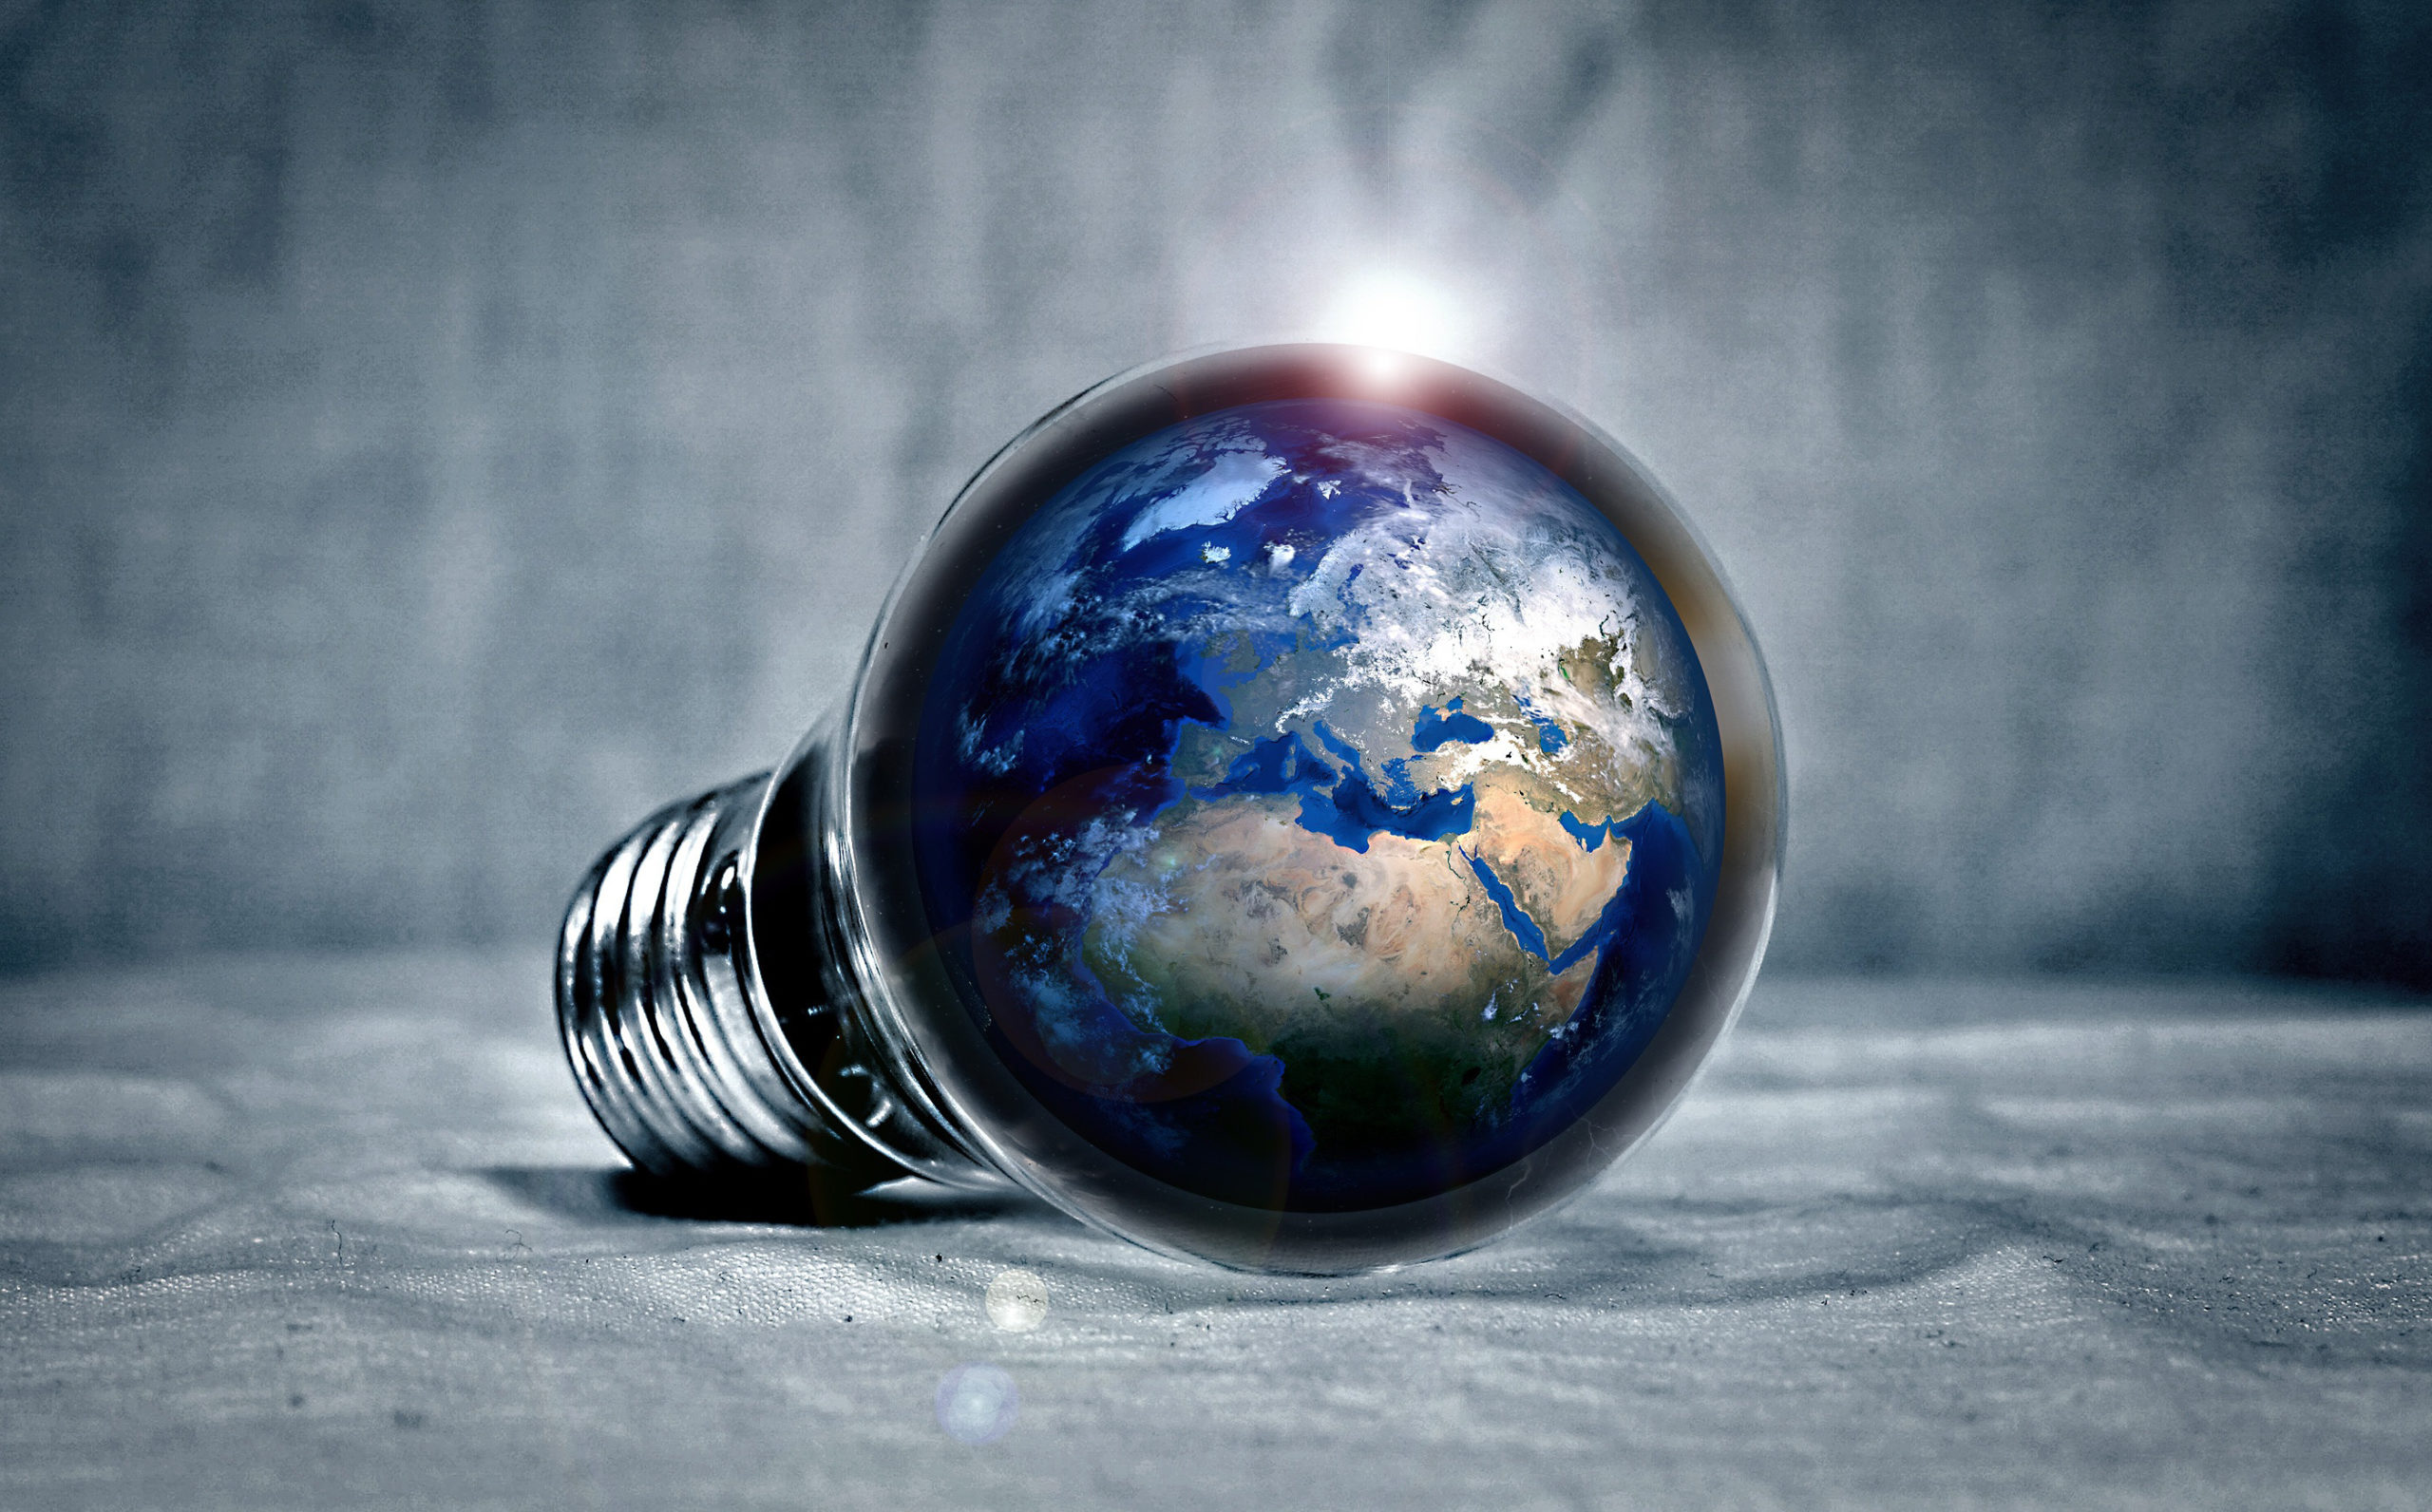 Earth inside a lightbulb. Photo by PIRO4D/Goodfreephotos.com